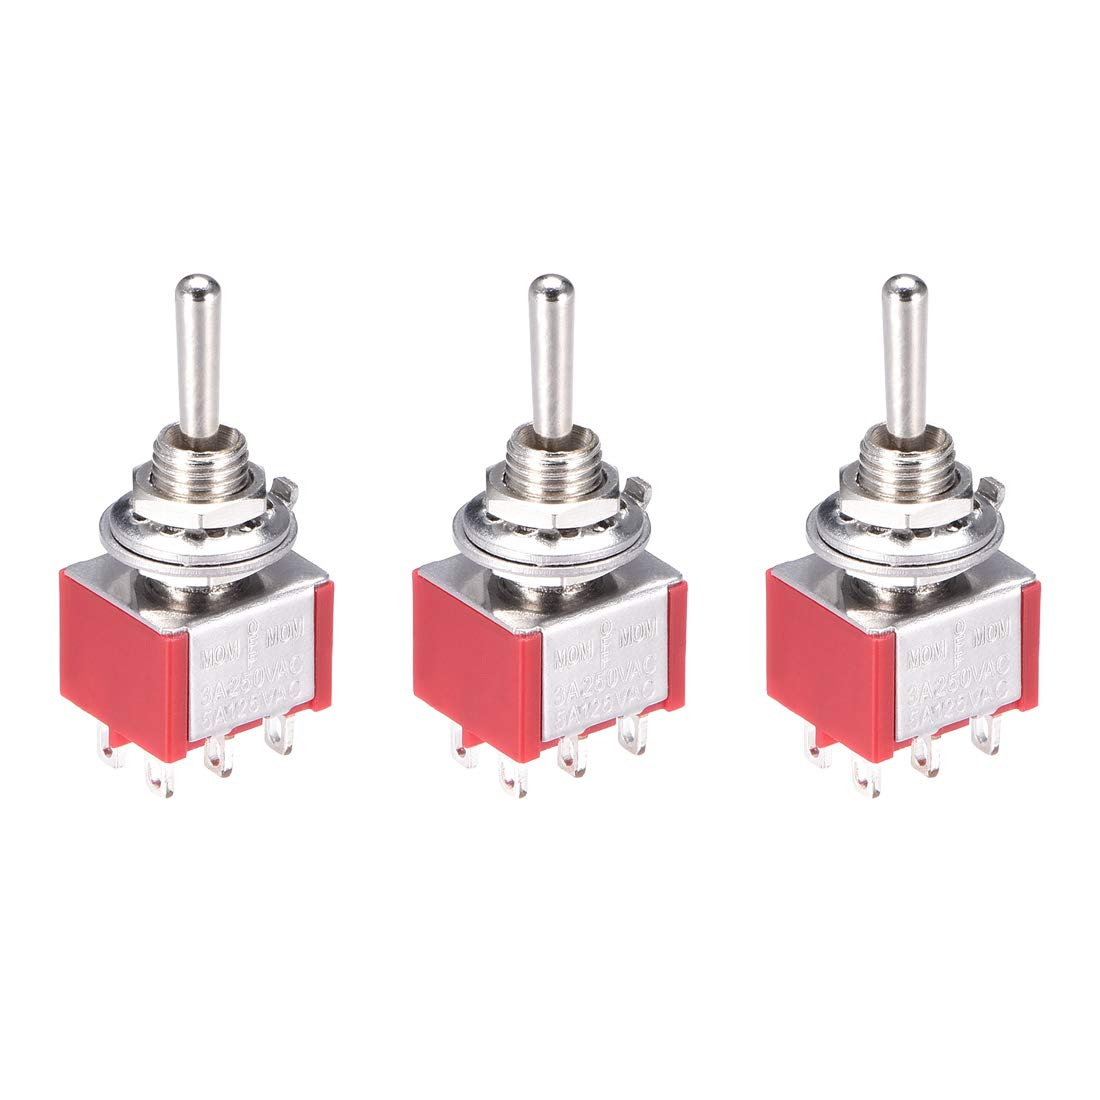 uxcell Momentary Rocker Toggle Switch 3 Positions Heavy-Duty 3A 250V 5A 125V 6Pin DPDT ON//Off//ON 3 Pcs